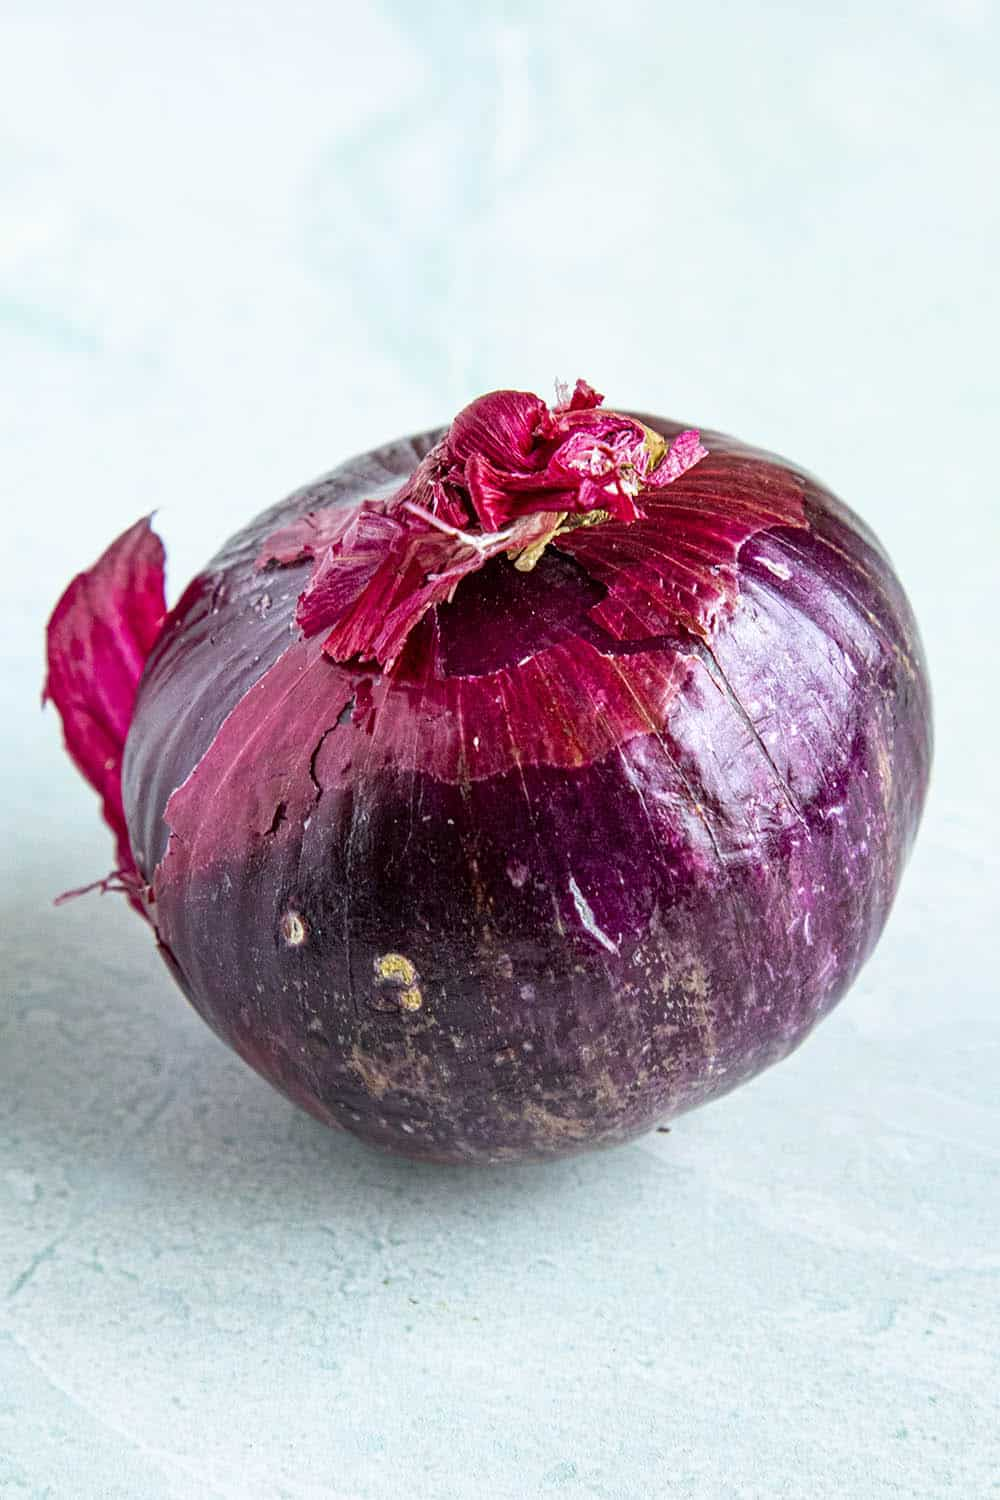 "A large red onion ""width ="" 1000 ""height ="" 1500 ""srcset ="" https://www.chilipeppermadness.com/wp-content/uploads/2020/04/Red-Onion.jpg 1000w, https://www. chilipeppermadness.com / wp-content / uploads / 2020/04 / Red-Onion-500x750.jpg 500w, https://www.chilipeppermadness.com/wp-content/uploads/2020/04/Red-Onion-683x1024. jpg 683w, https://www.chilipeppermadness.com/wp-content/uploads/2020/04/Red-Onion-100x150.jpg 100w, https://www.chilipeppermadness.com/wp-content/uploads/2020/ 04 / Red-Onion-768x1152.jpg 768w ""Sizes ="" (max width: 1000px) 100vw, 1000px"